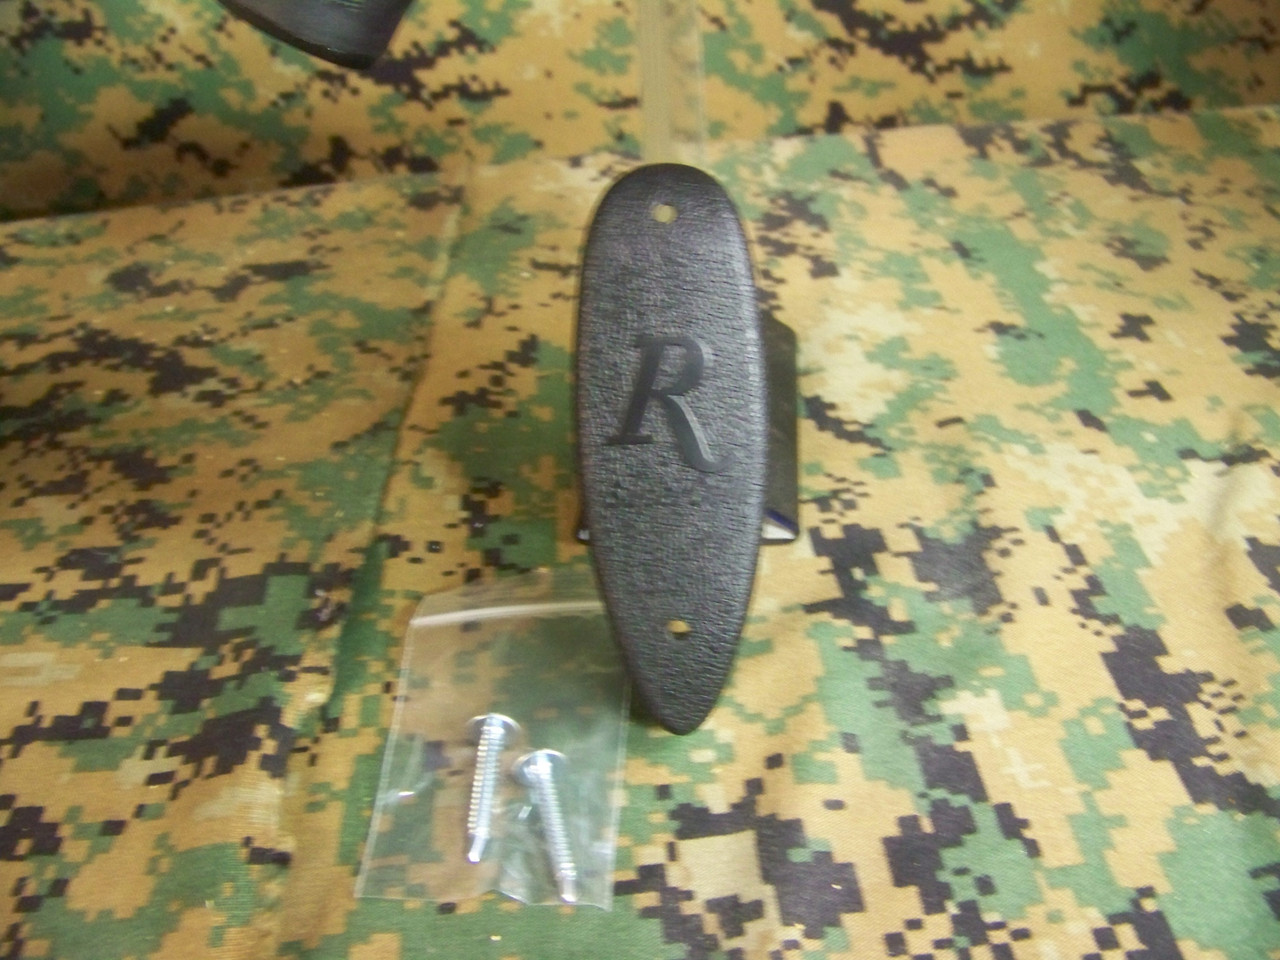 """Remington LE 13"""" LOP, Supercell recoil pad with screws."""